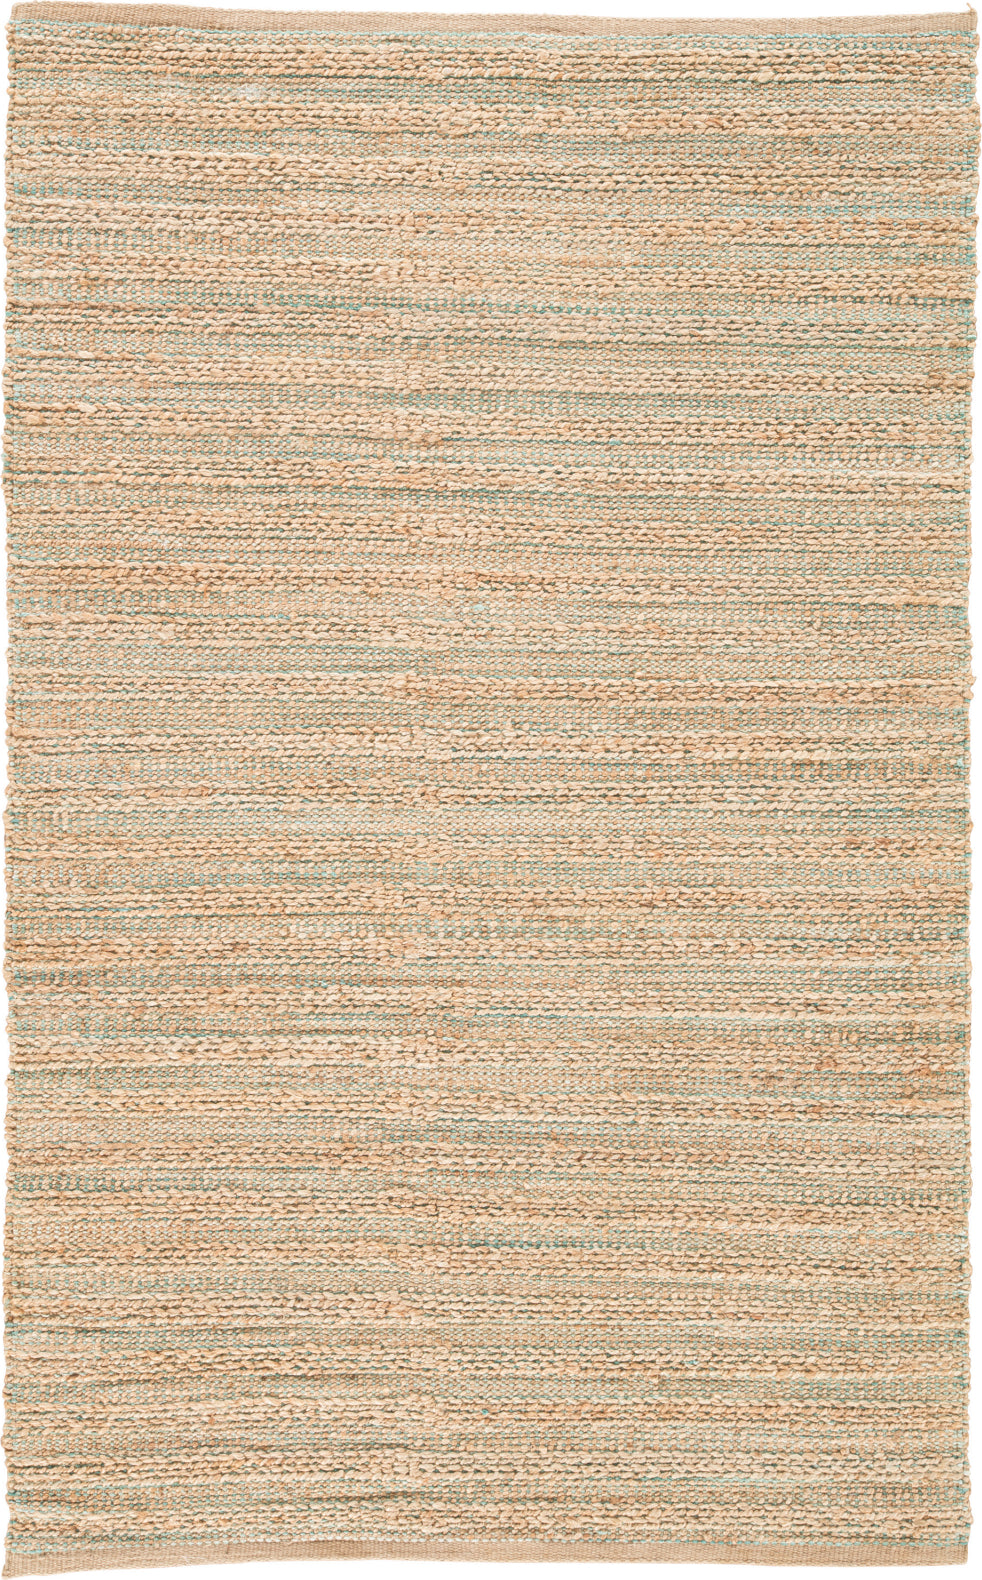 Picture of: Jaipur Living Himalaya Canterbury Hm15 Tan Green Area Rug Incredible Rugs And Decor